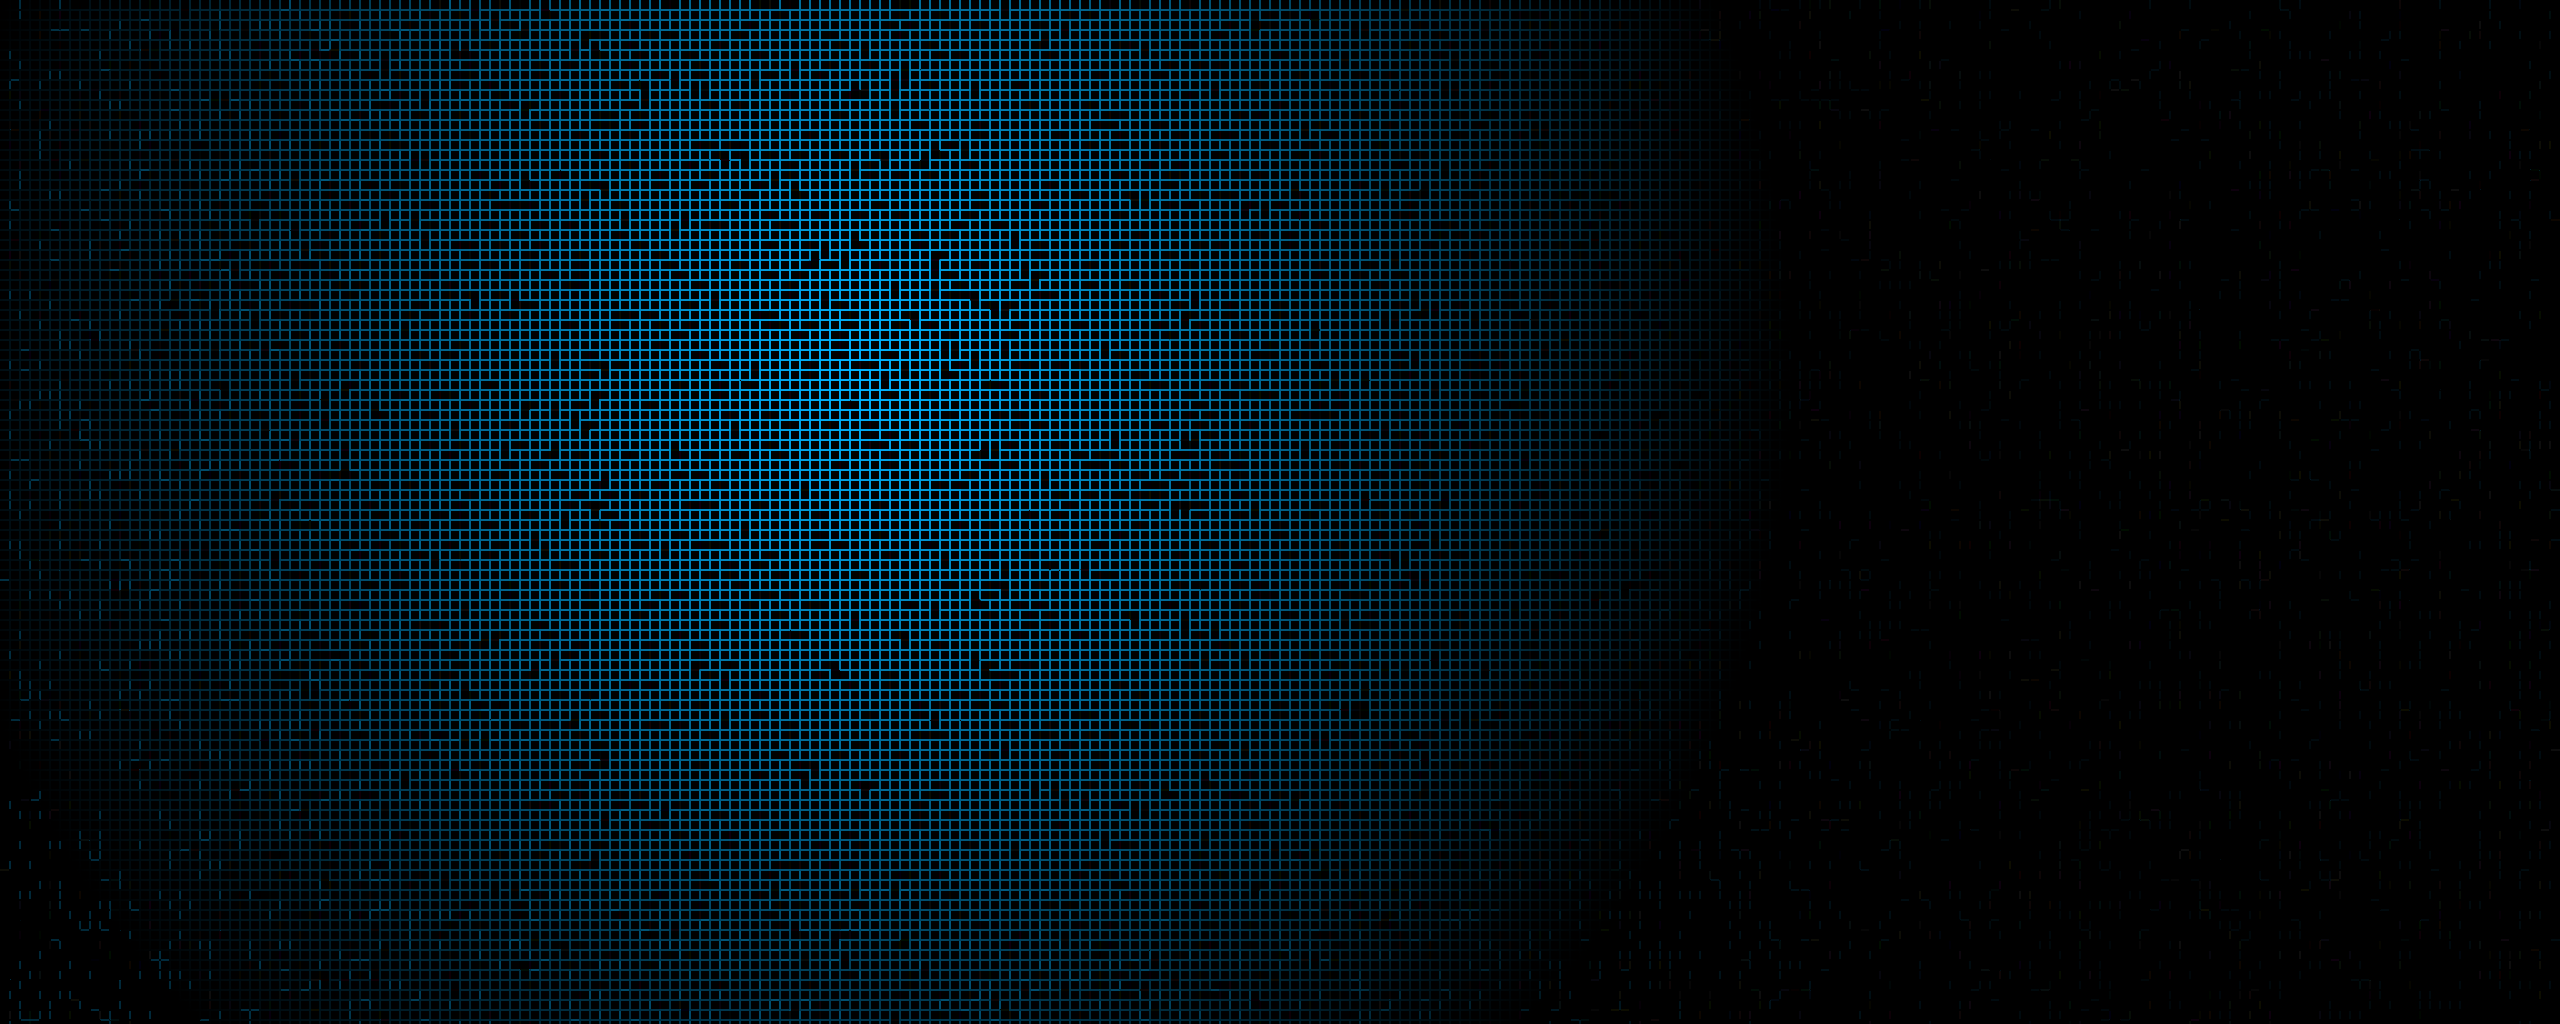 Wallpaper Blue And Black